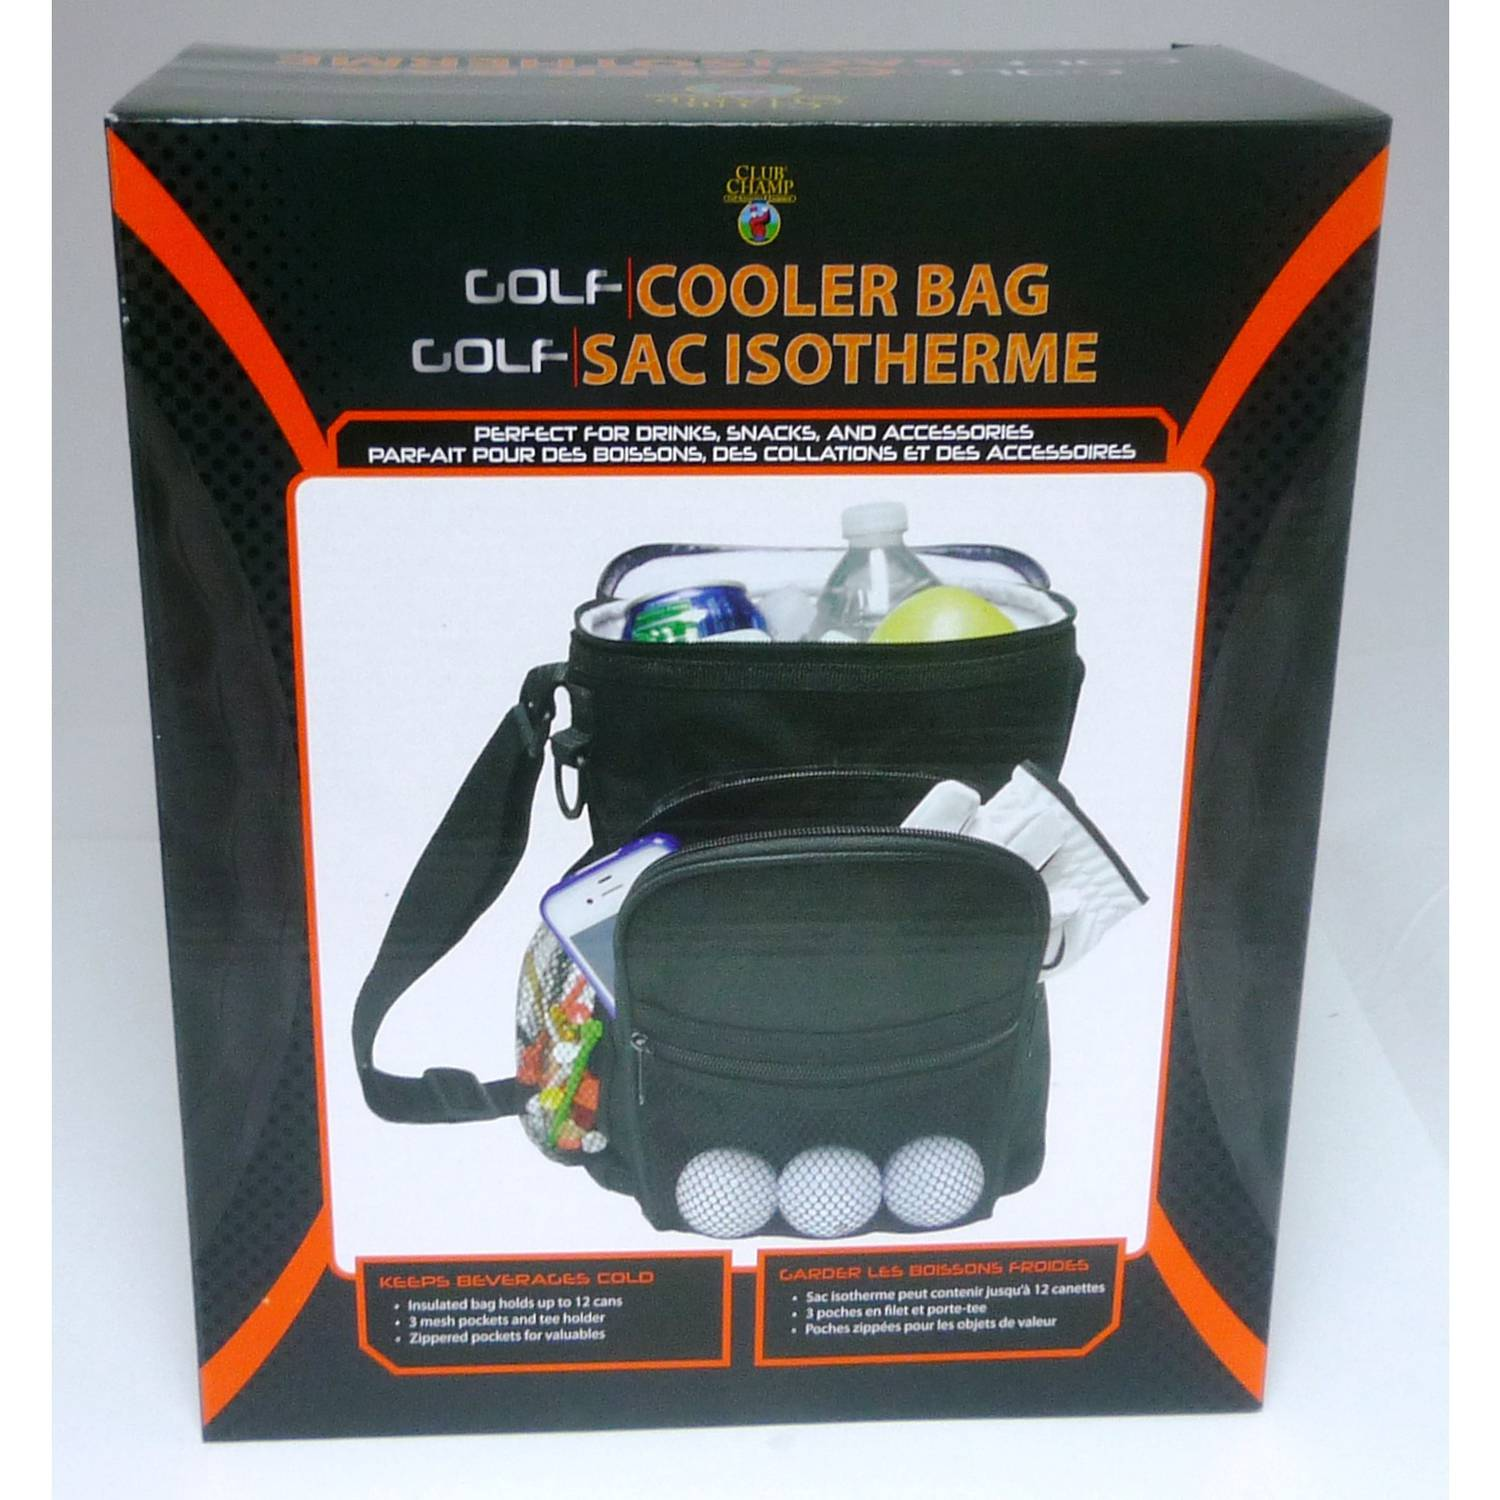 Club Champ Golf Cooler Bag